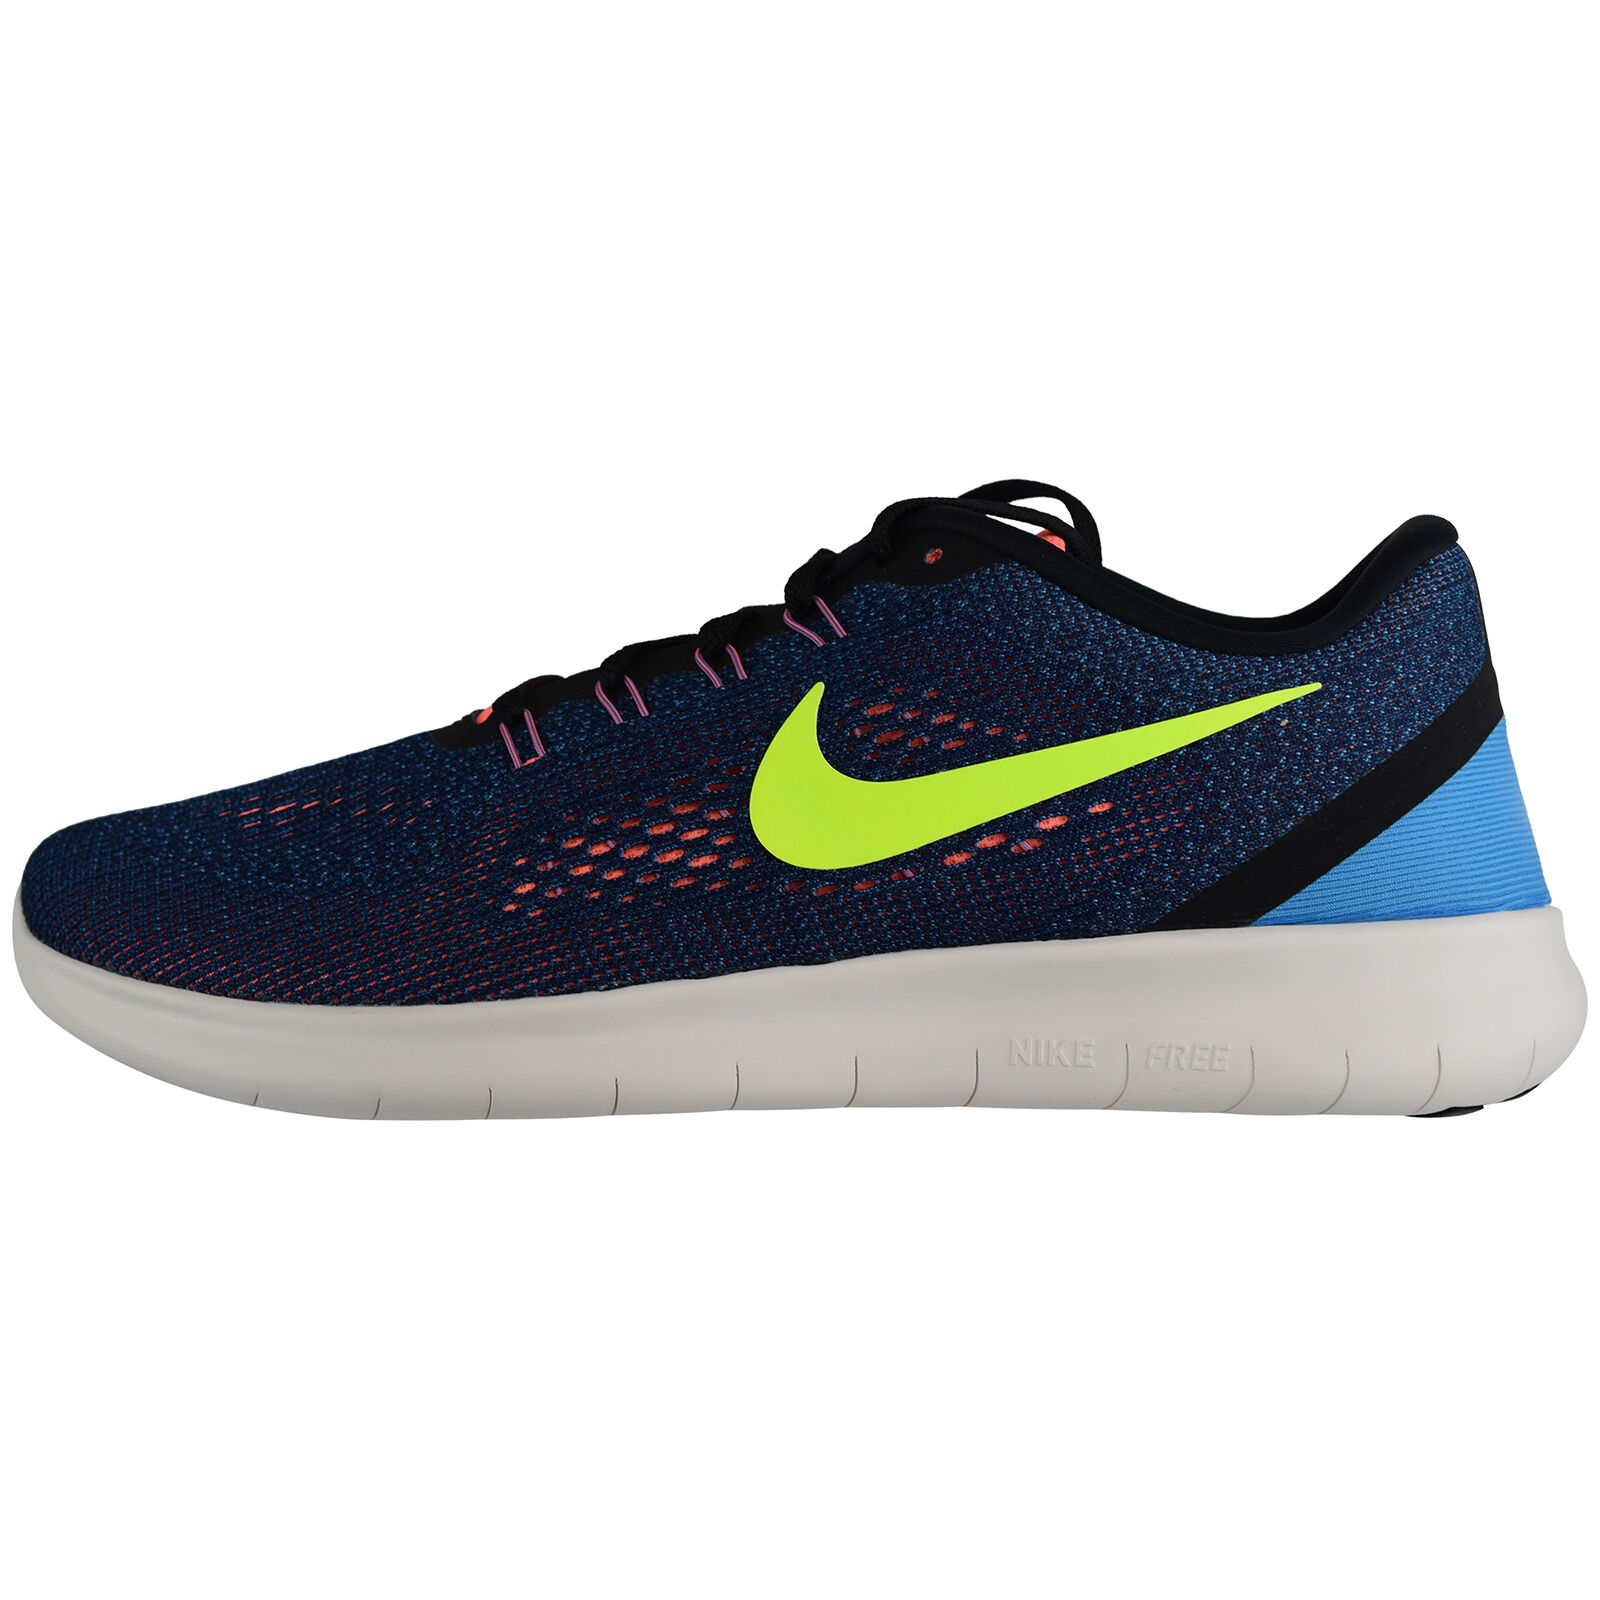 Nike Free Rn 831508-501 Lifestyle Running shoes Running Running Casual Trainers